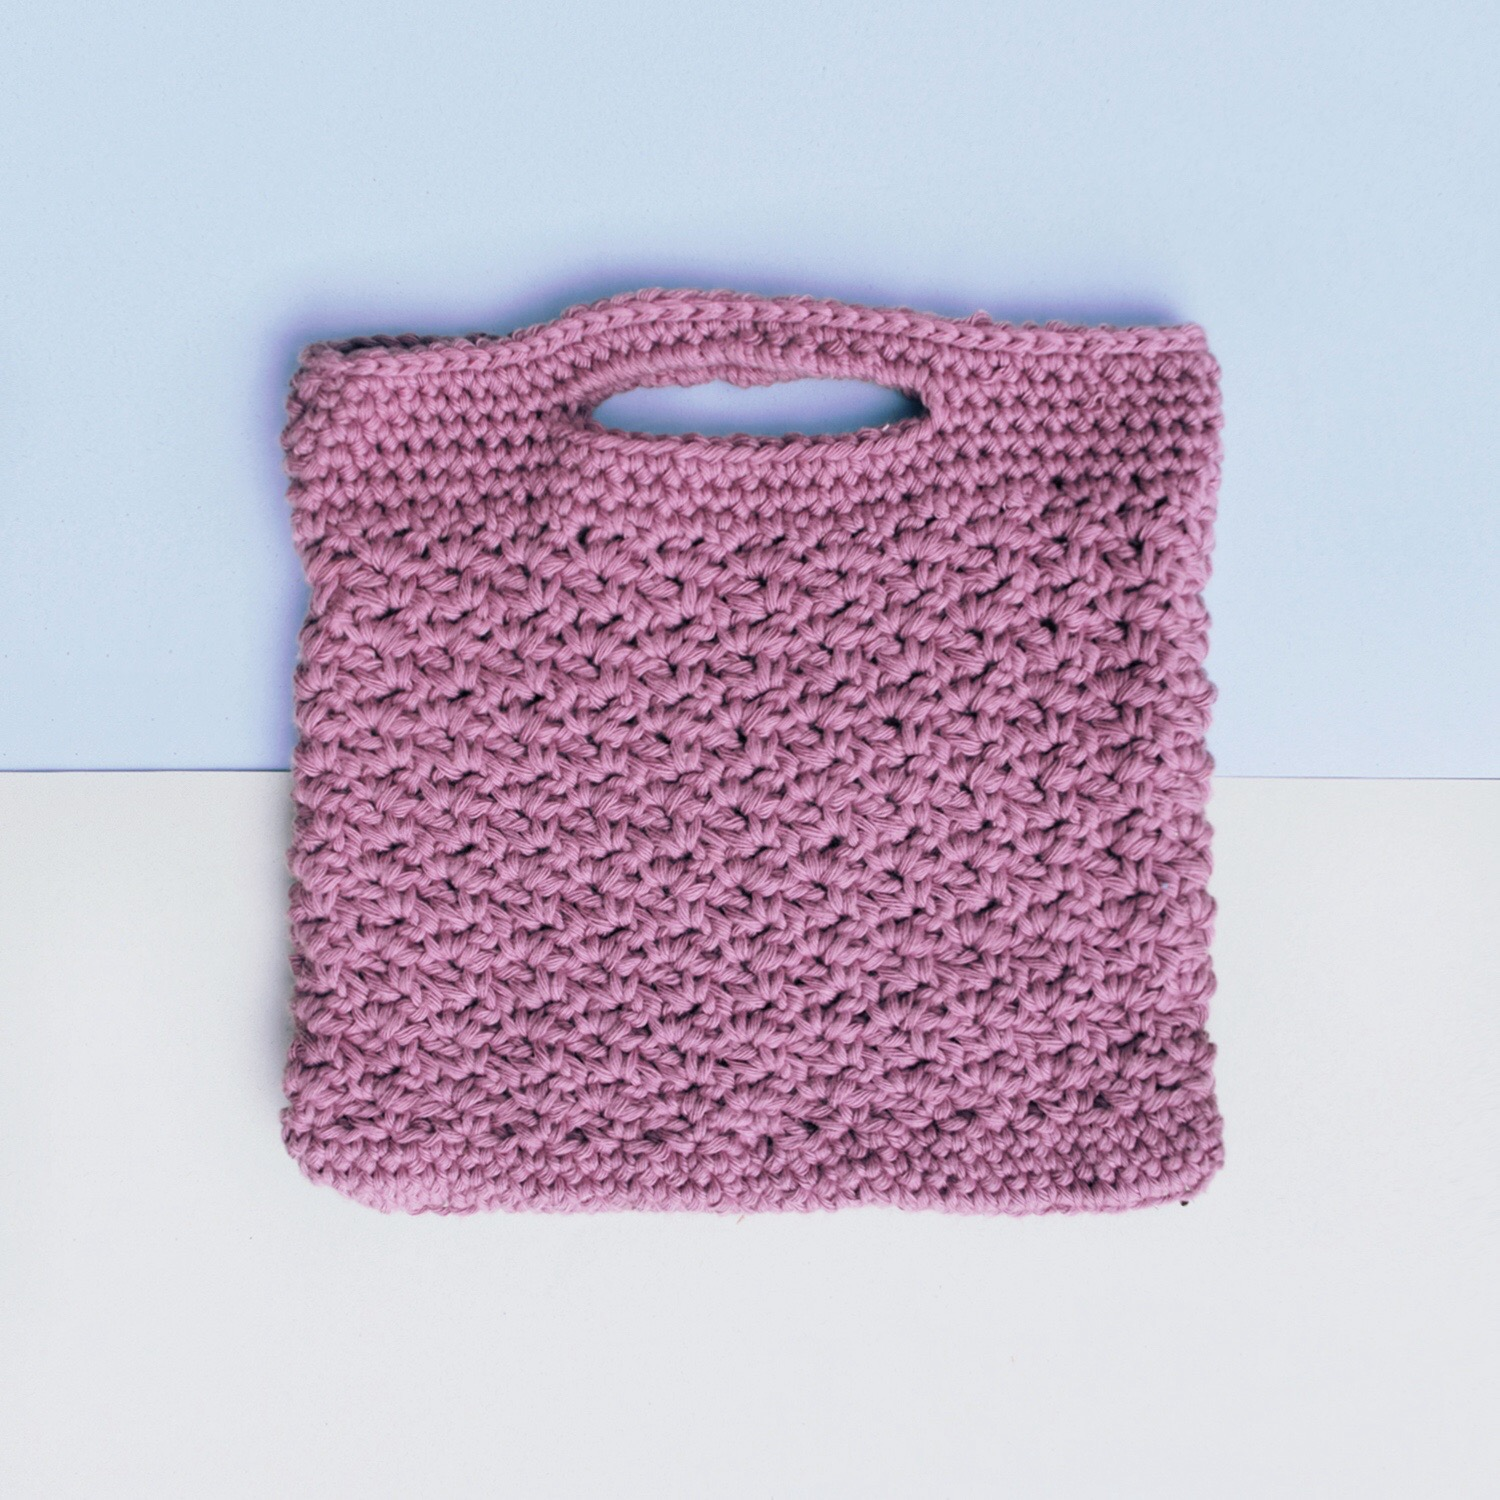 Wattle Stitch Handbag Free Crochet Pattern